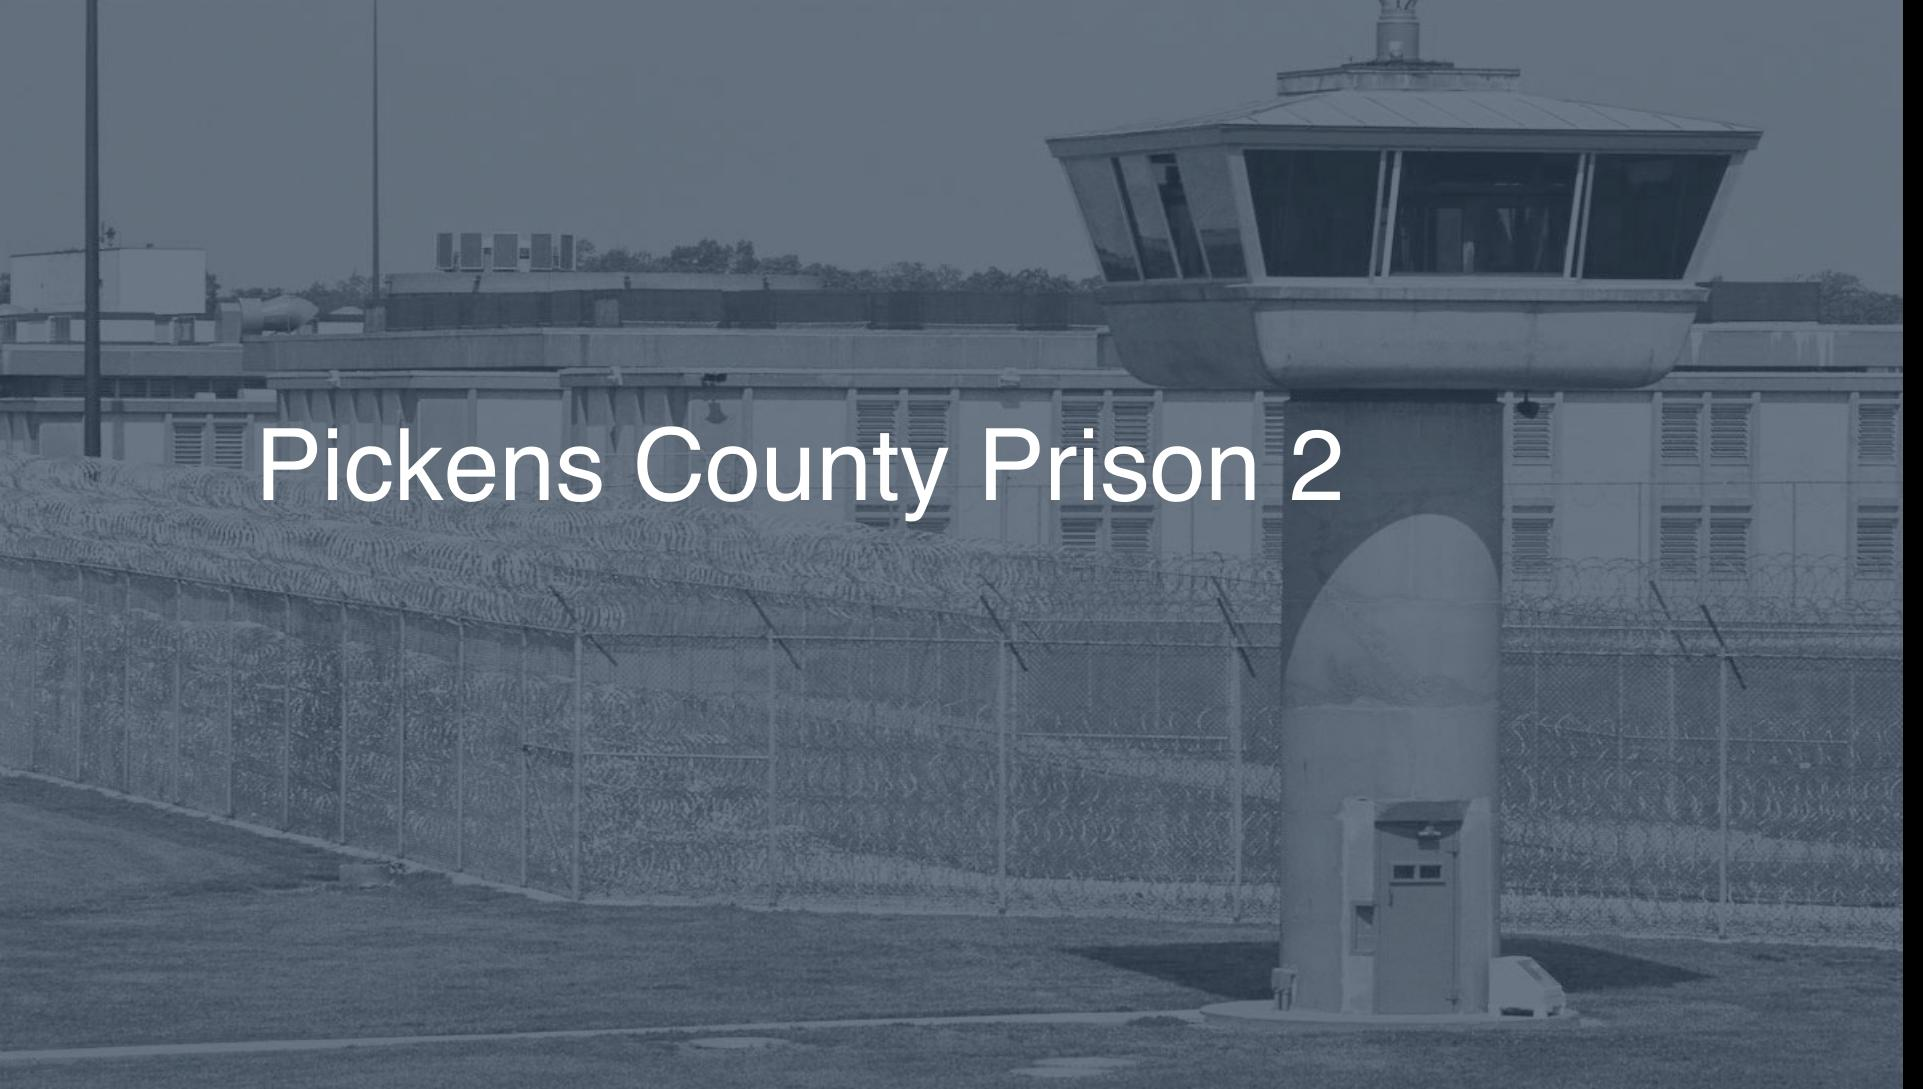 Pickens County Prison | Pigeonly - Inmate Search, Locate